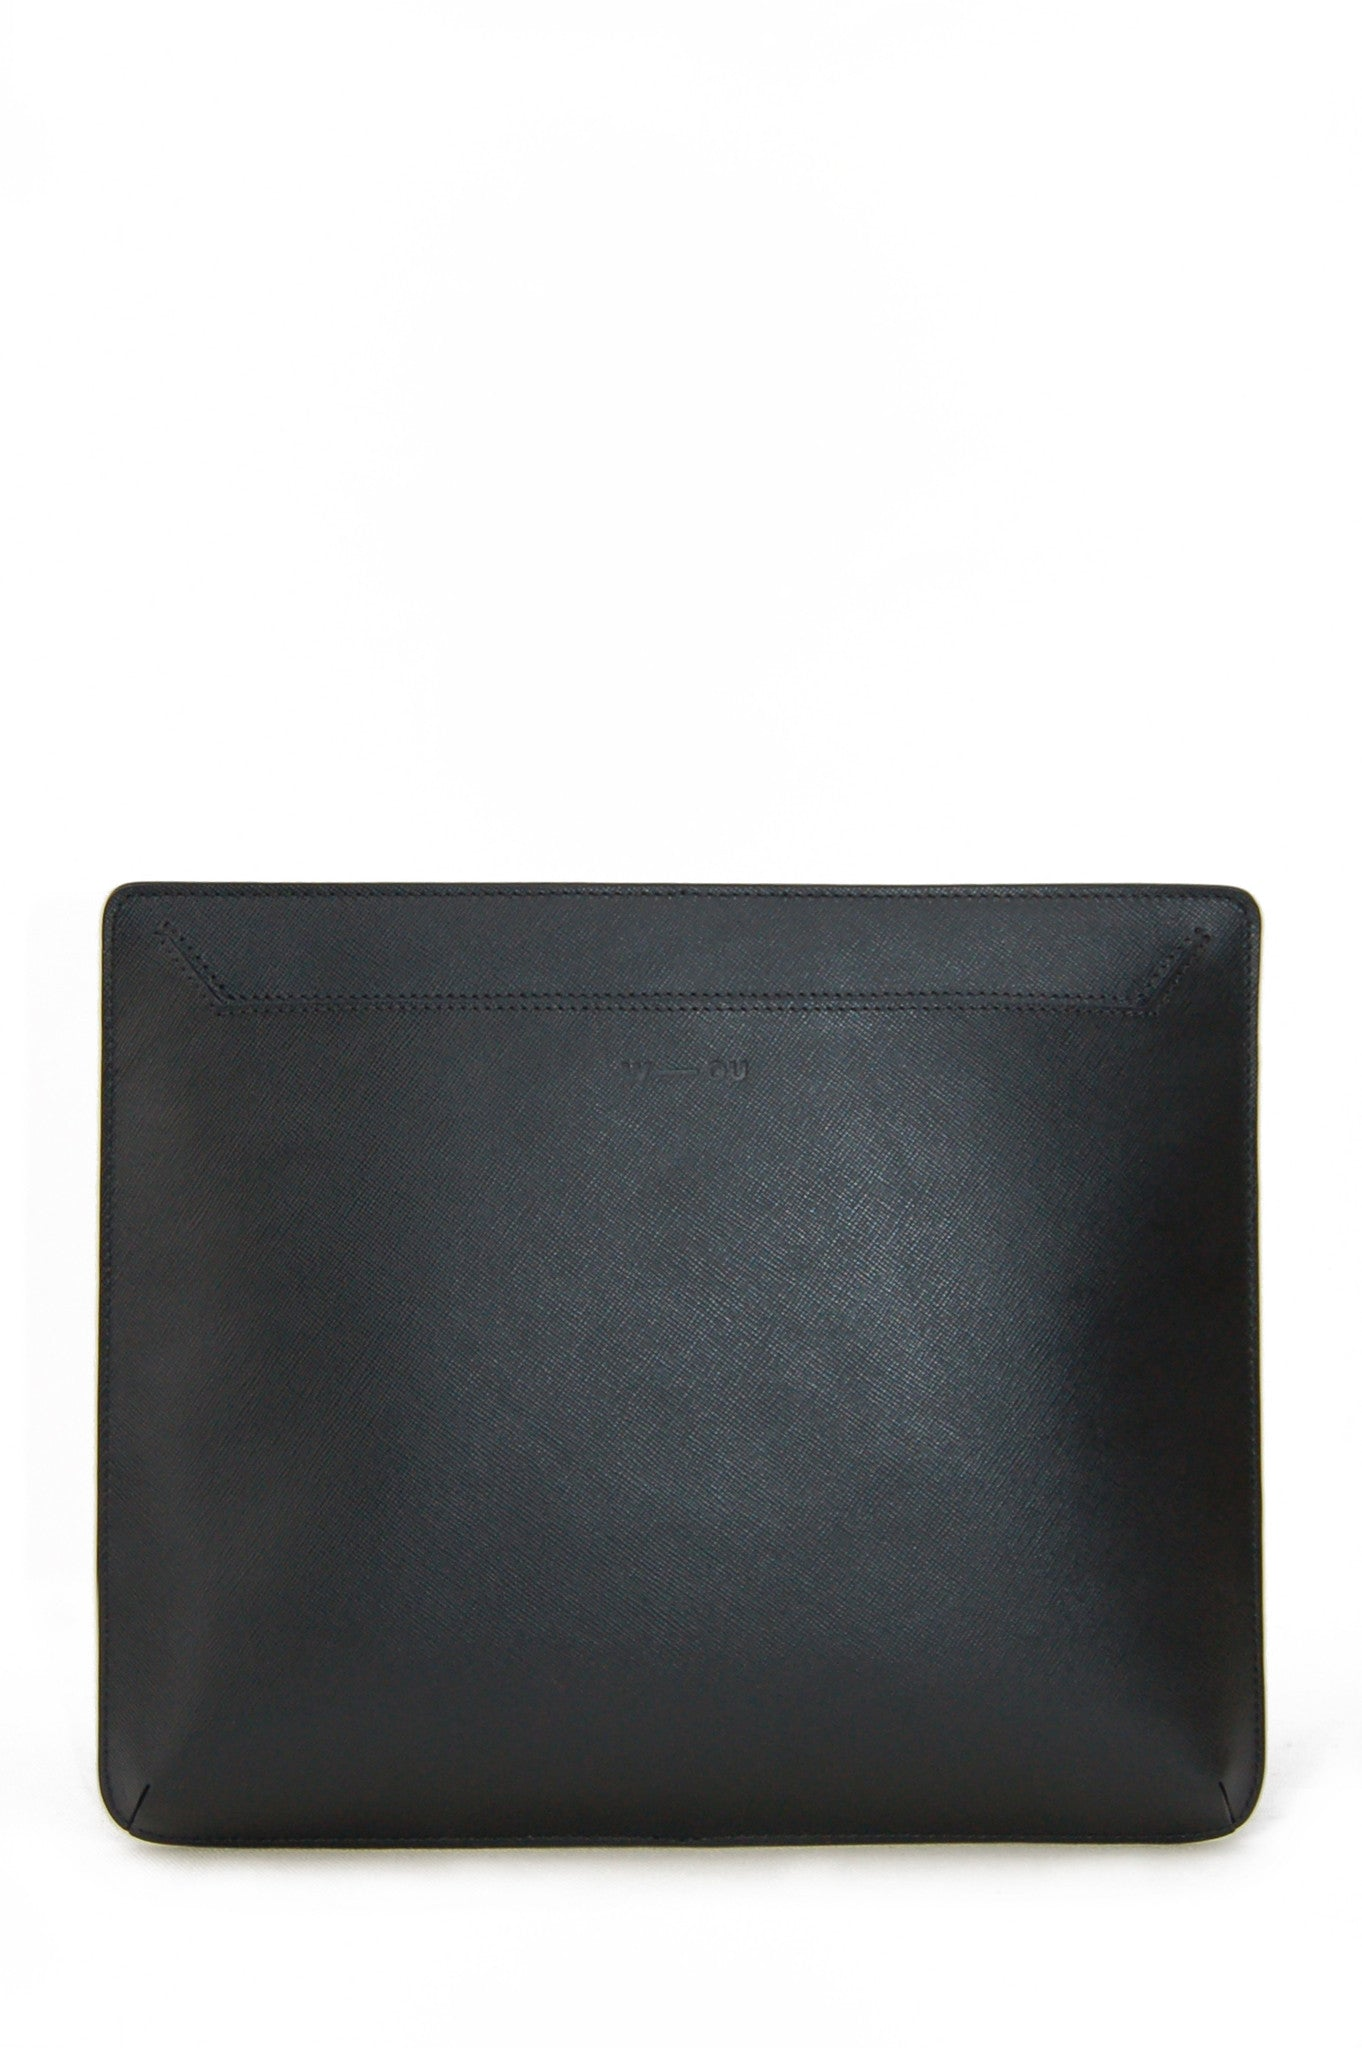 Norton ipad case black